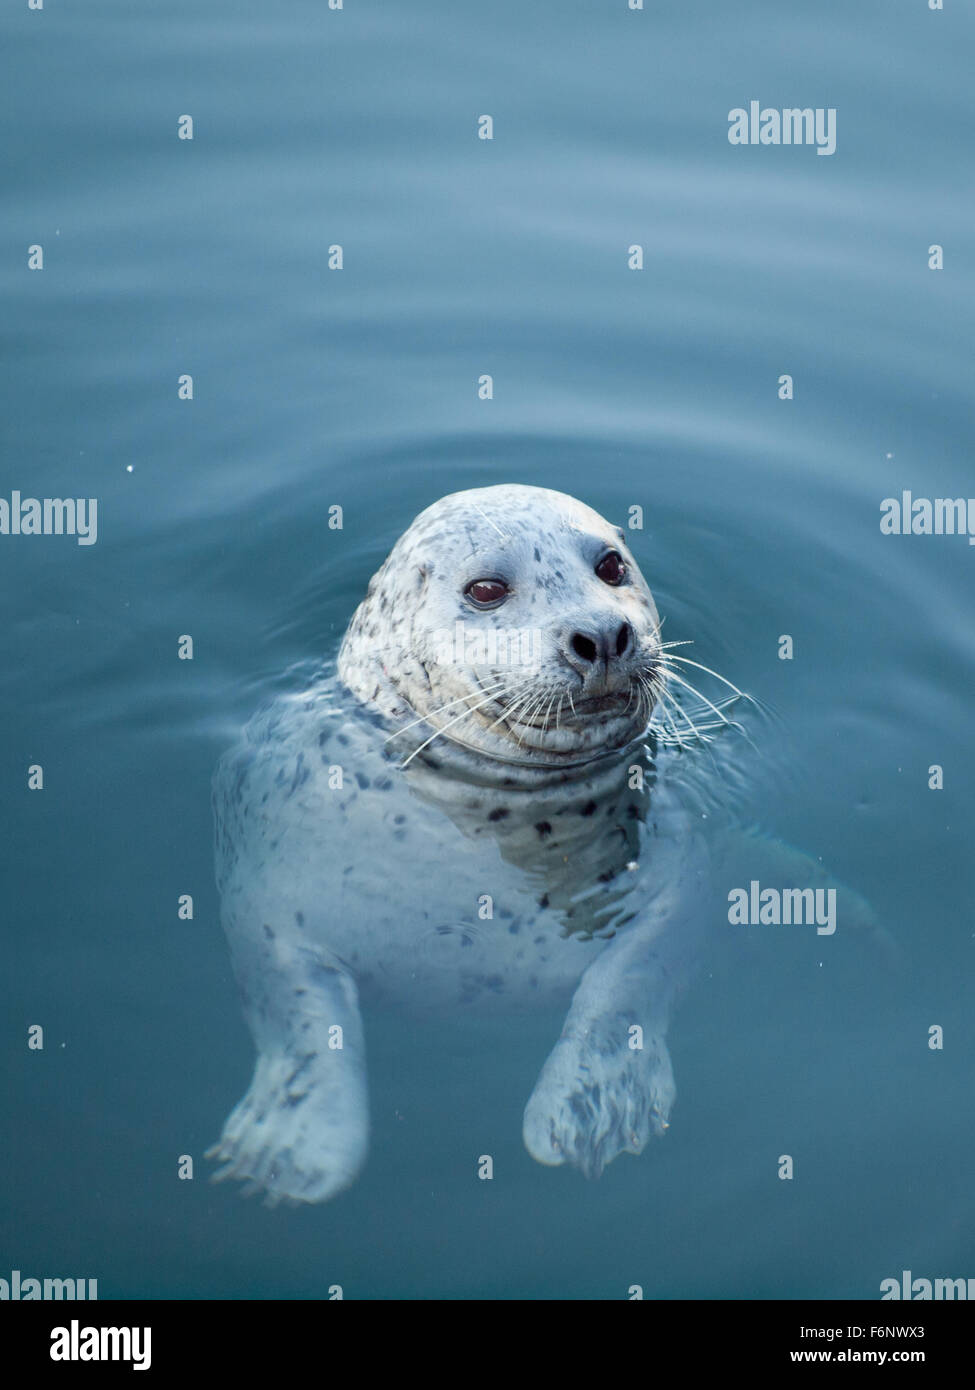 A wild harbour seal (harbor seal) at Fisherman's Wharf in Victoria, British Columbia, Canada. - Stock Image